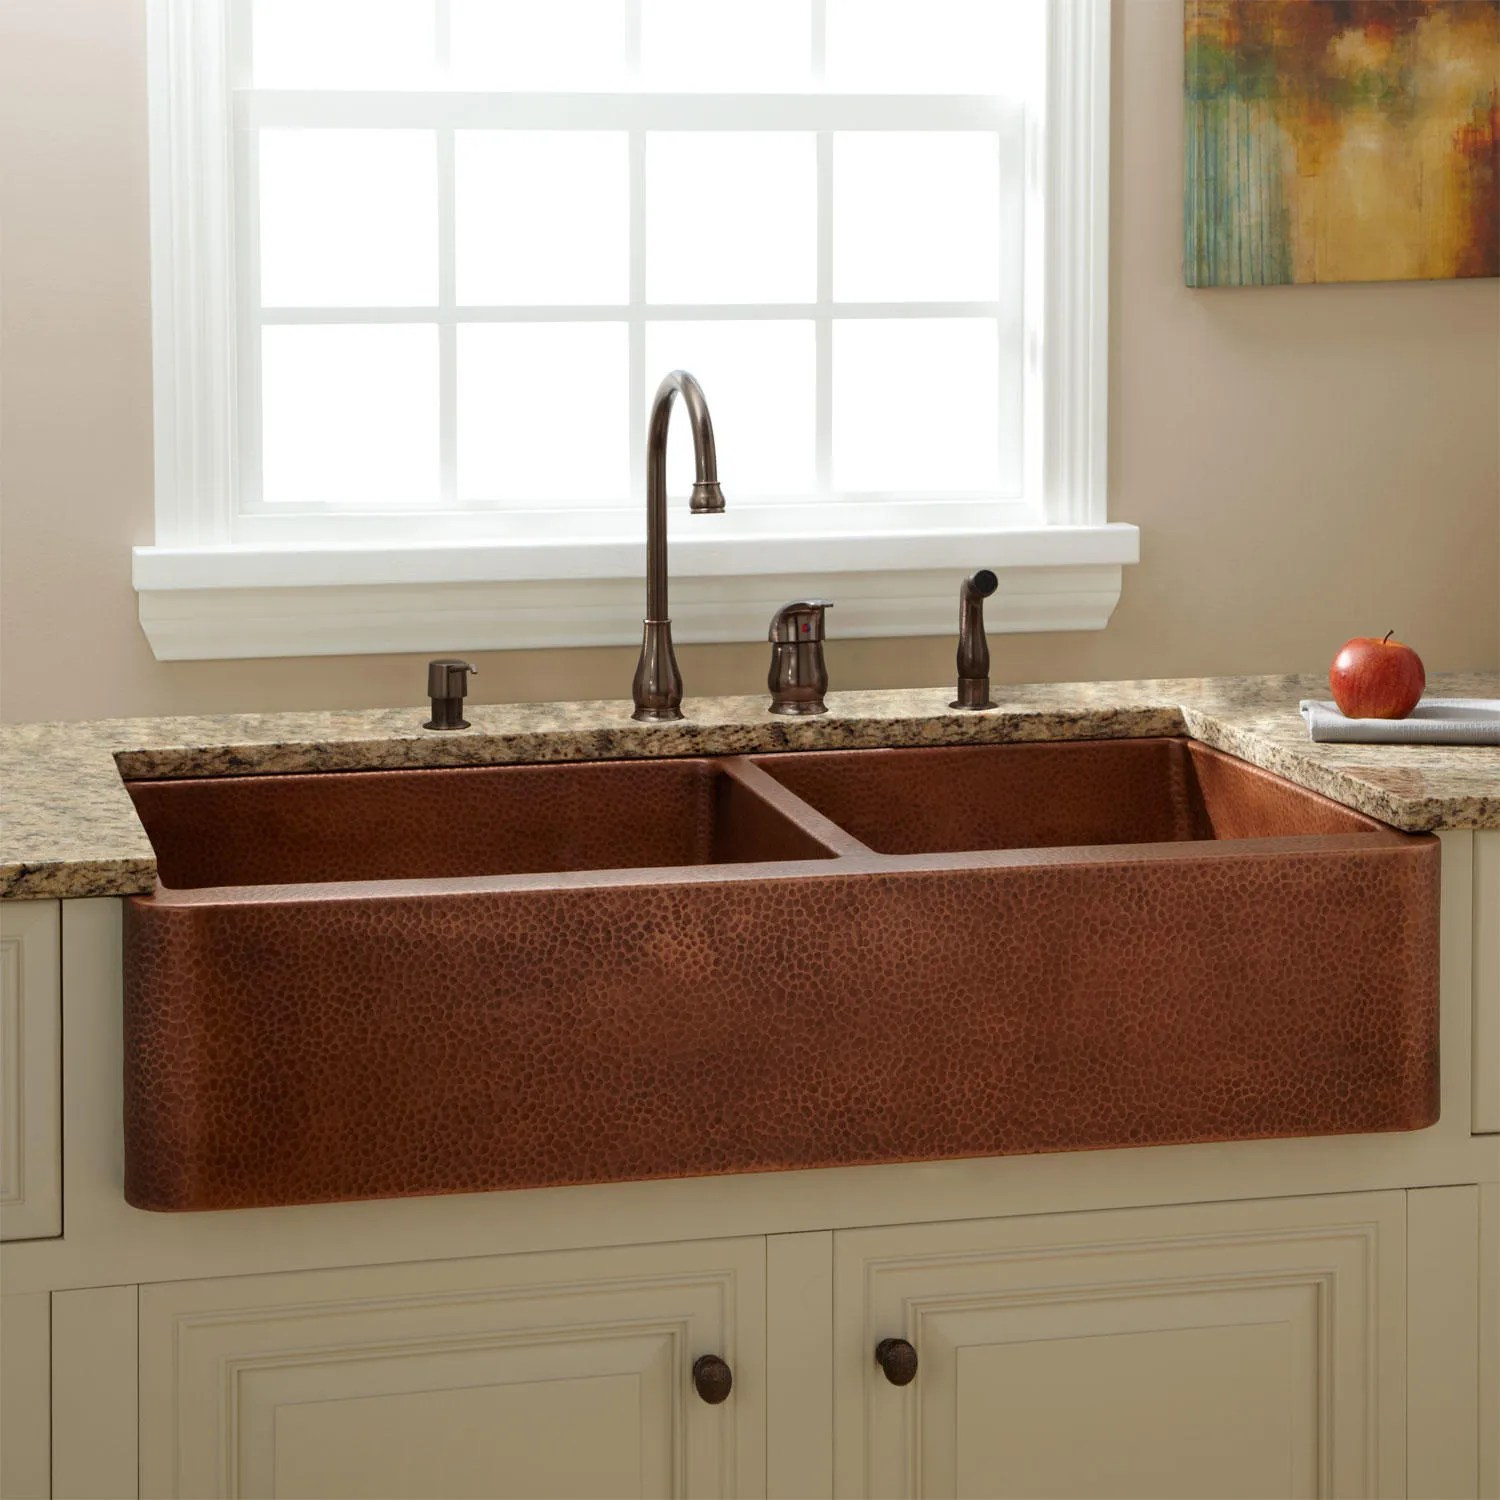 39 Fiona 60 40 Offset Double Bowl Hammered Copper Farmhouse Sink  eBay